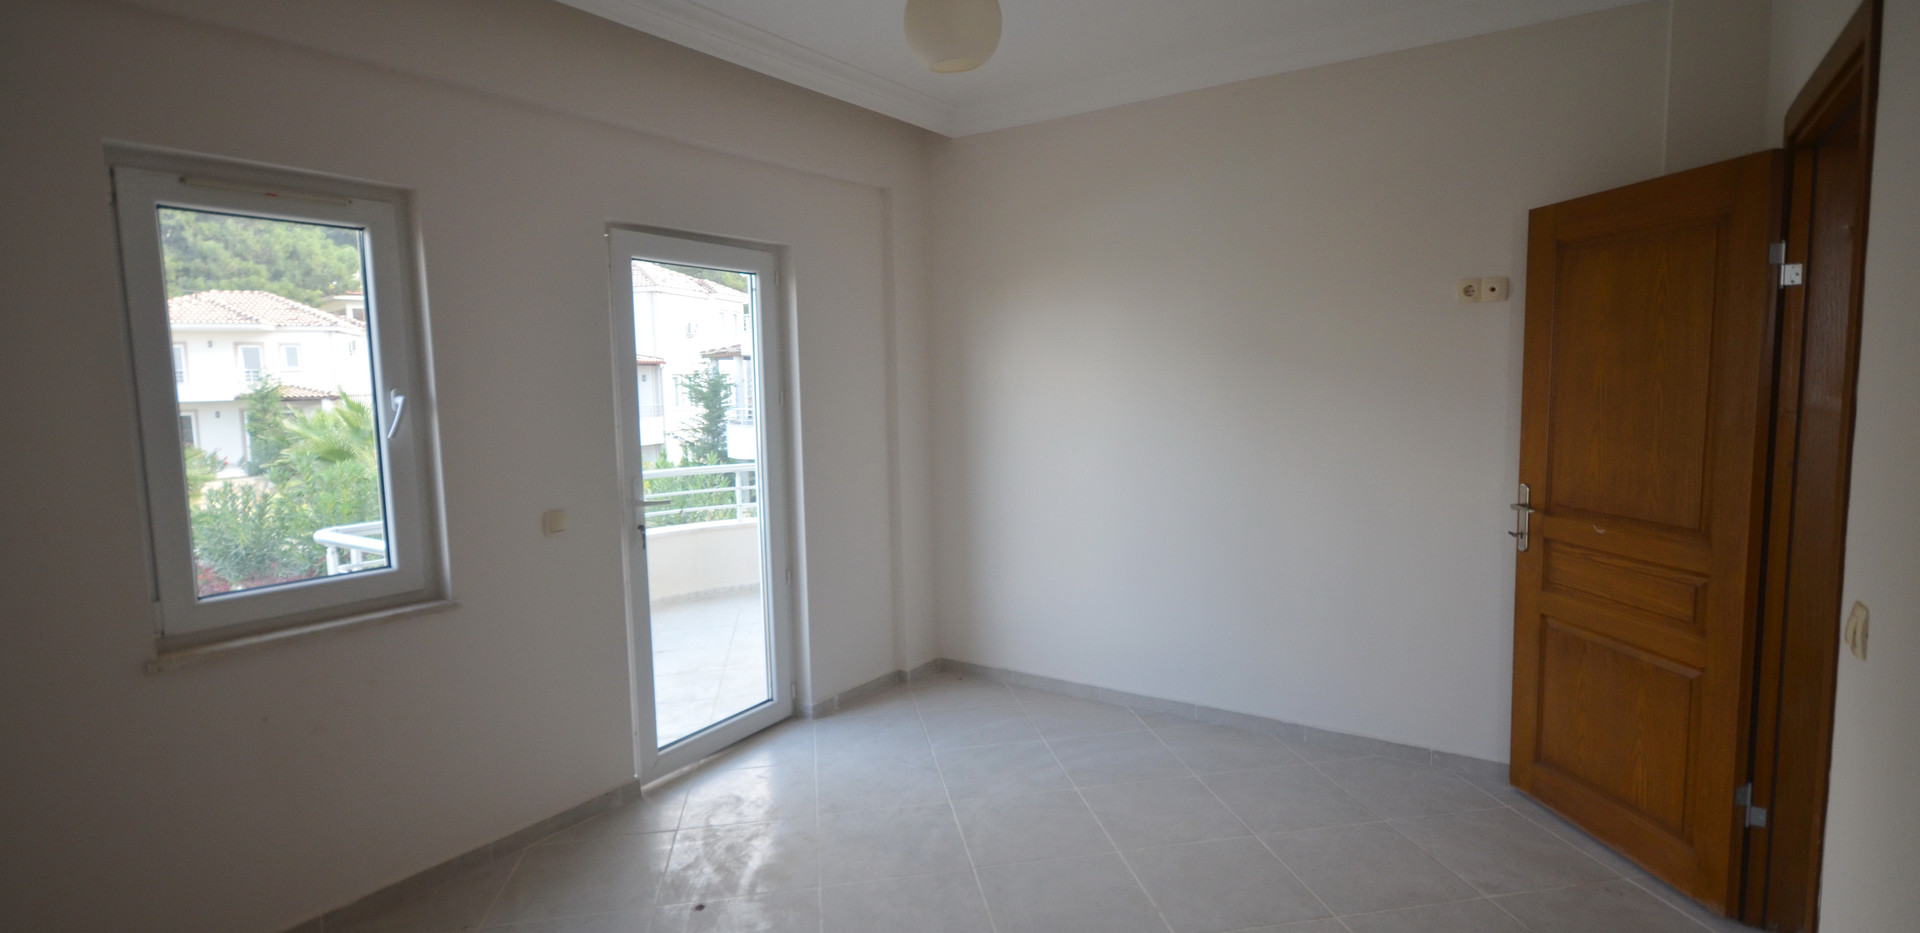 Bedroom One, with Balcony Off